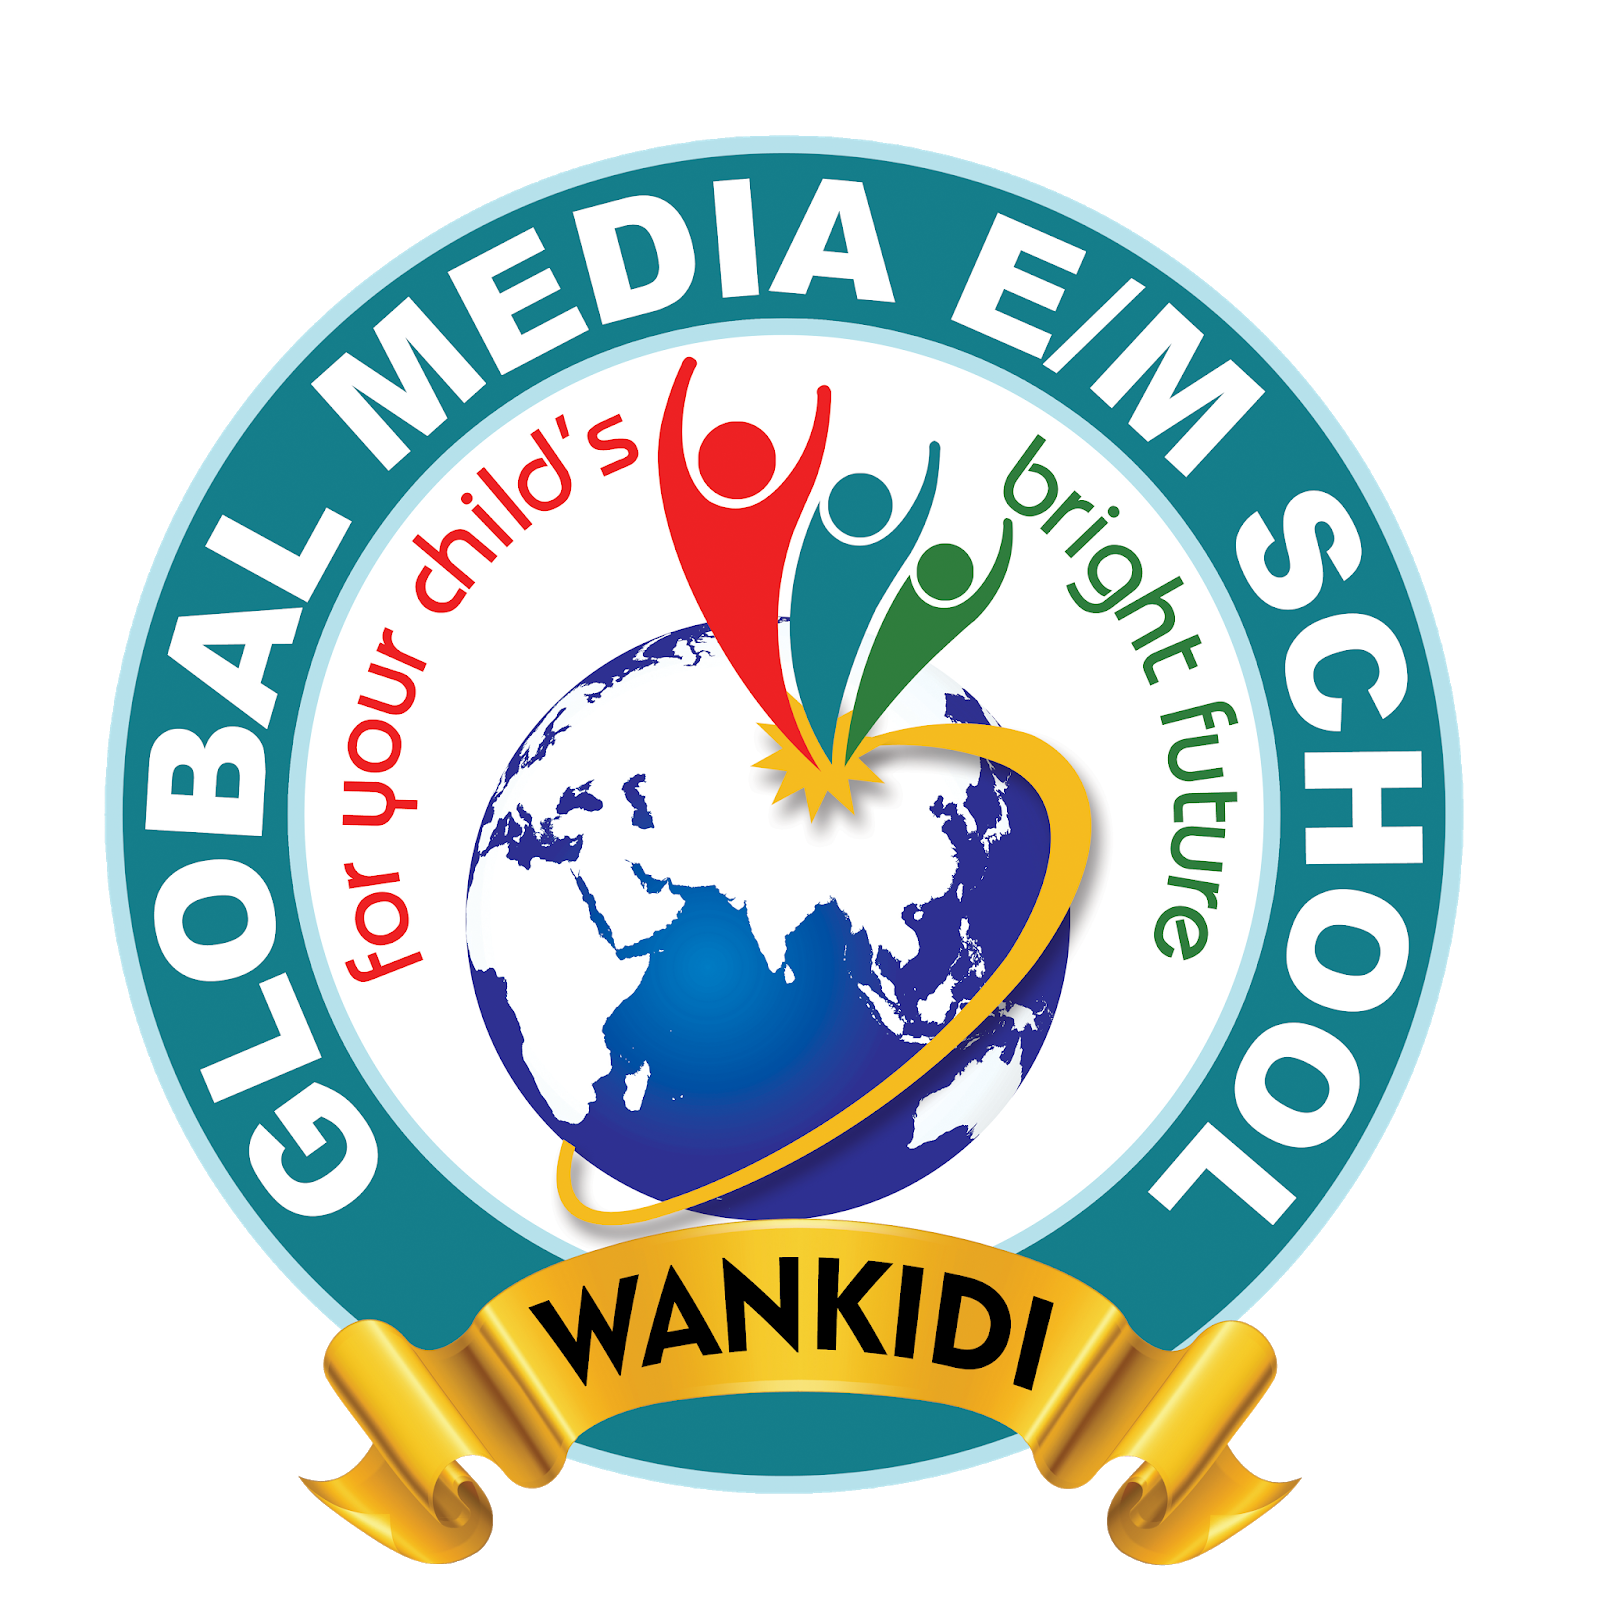 Global media english medium school PNG logo downloads.